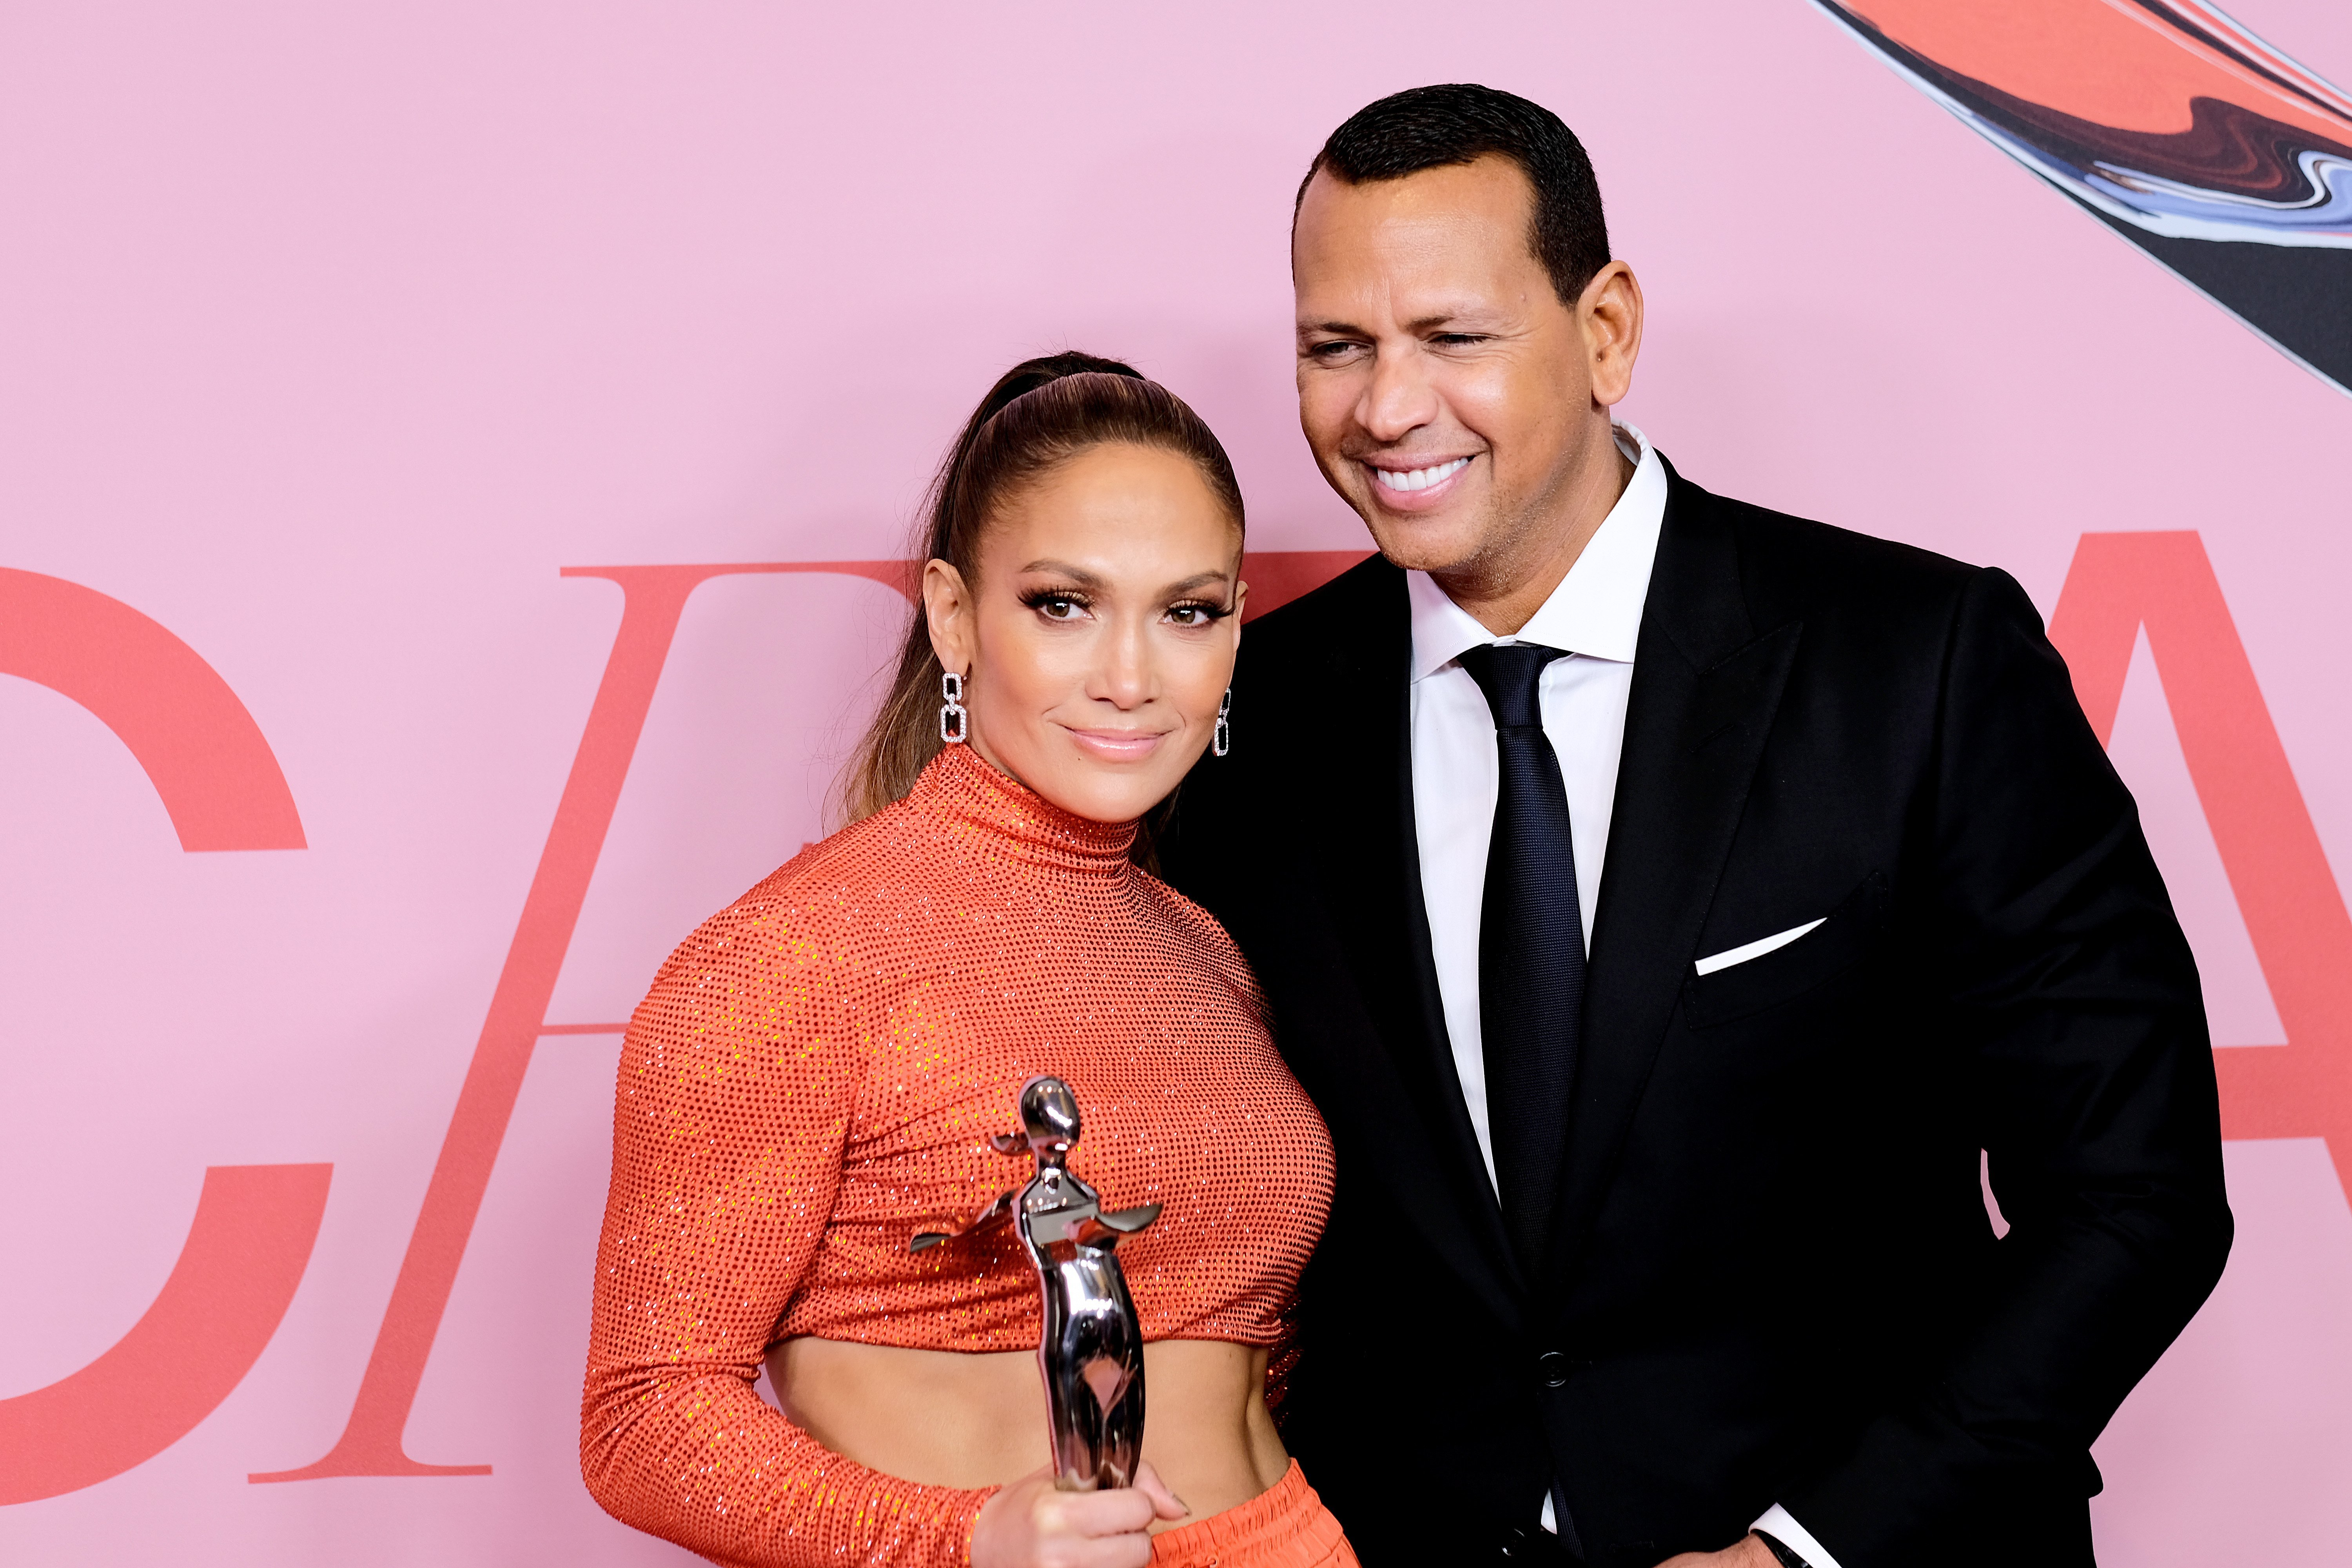 Jennifer Lopez poses with the Fashion Icon Award and Alex Rodriguez during Winners Walk during the CFDA Fashion Awards at the Brooklyn Museum of Art on June 03, 2019, in New York City. | Source: Getty Images.